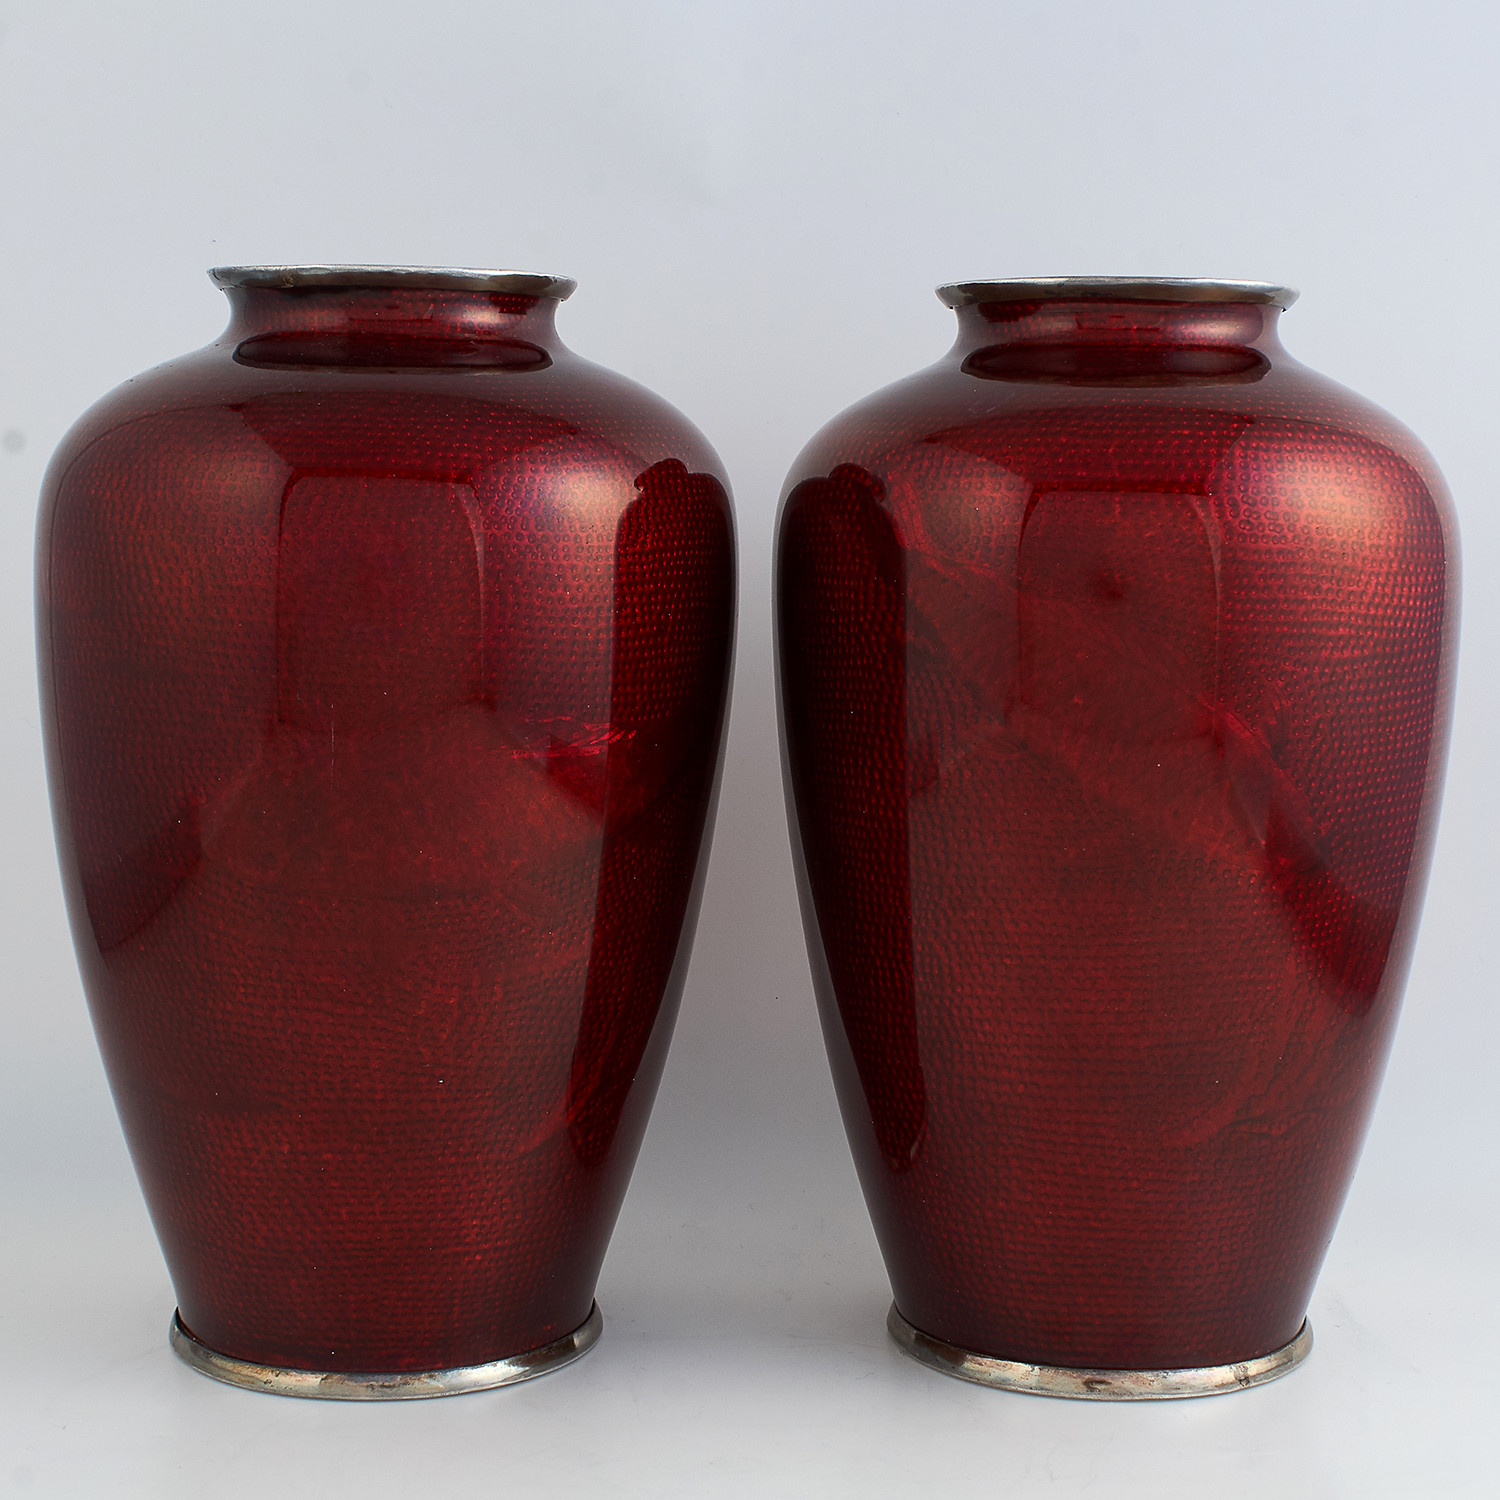 PAIR OF ANTIQUE SILVER AND ENAMEL VASES CIRCA 1920 the tapering rounded bodies decorated in red